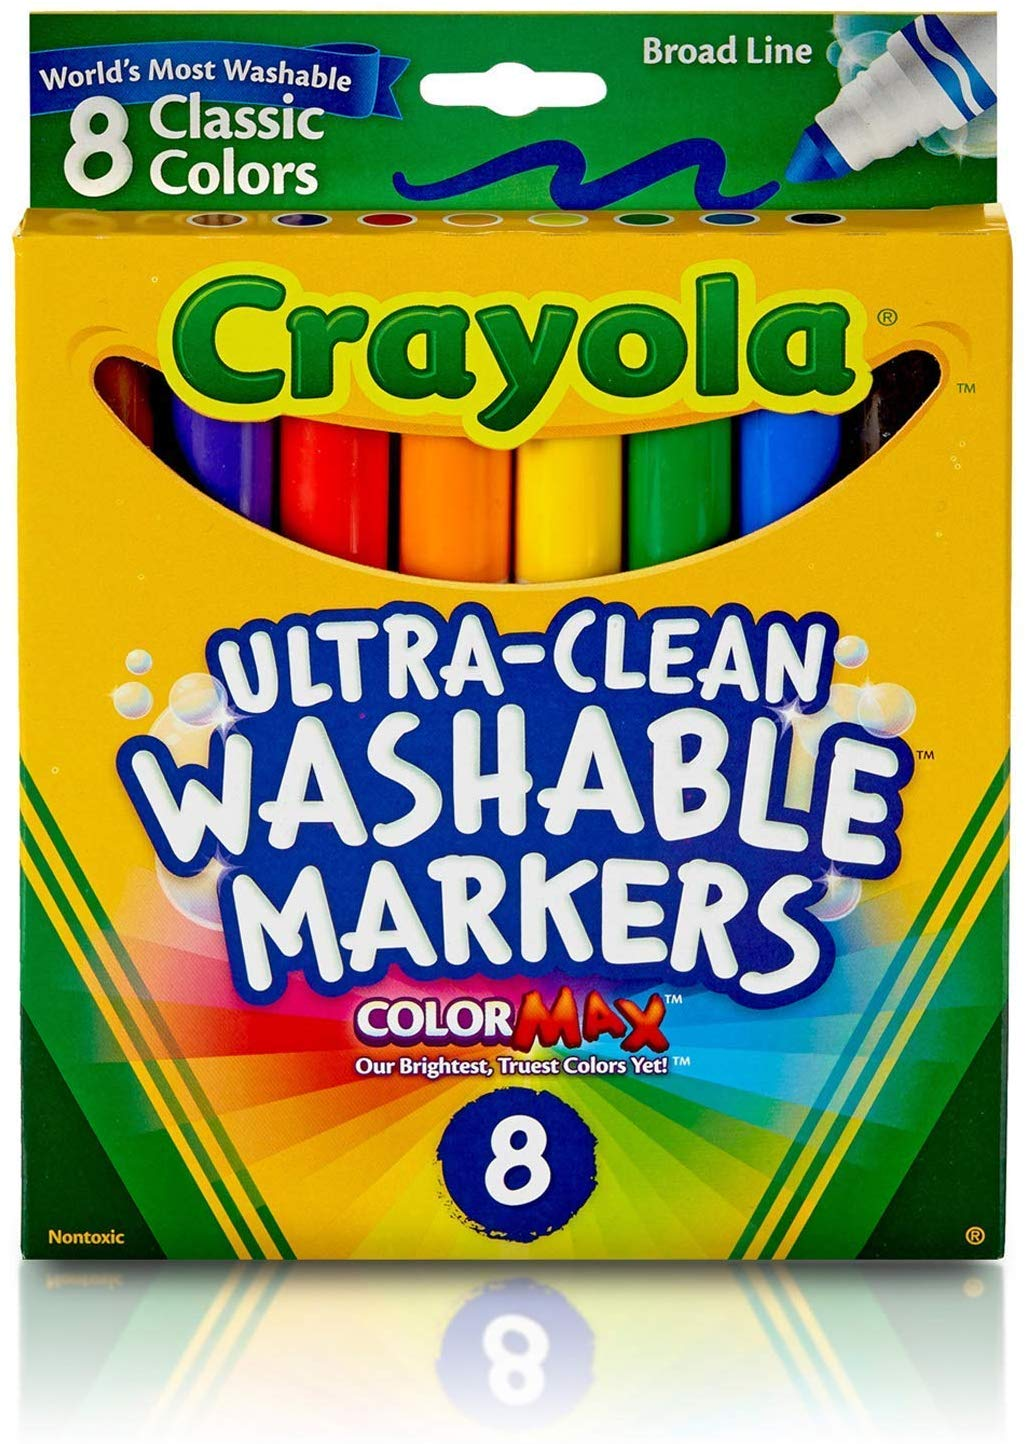 Crayola Ultra-Clean Washable Markers - Broad Line - 8 Count